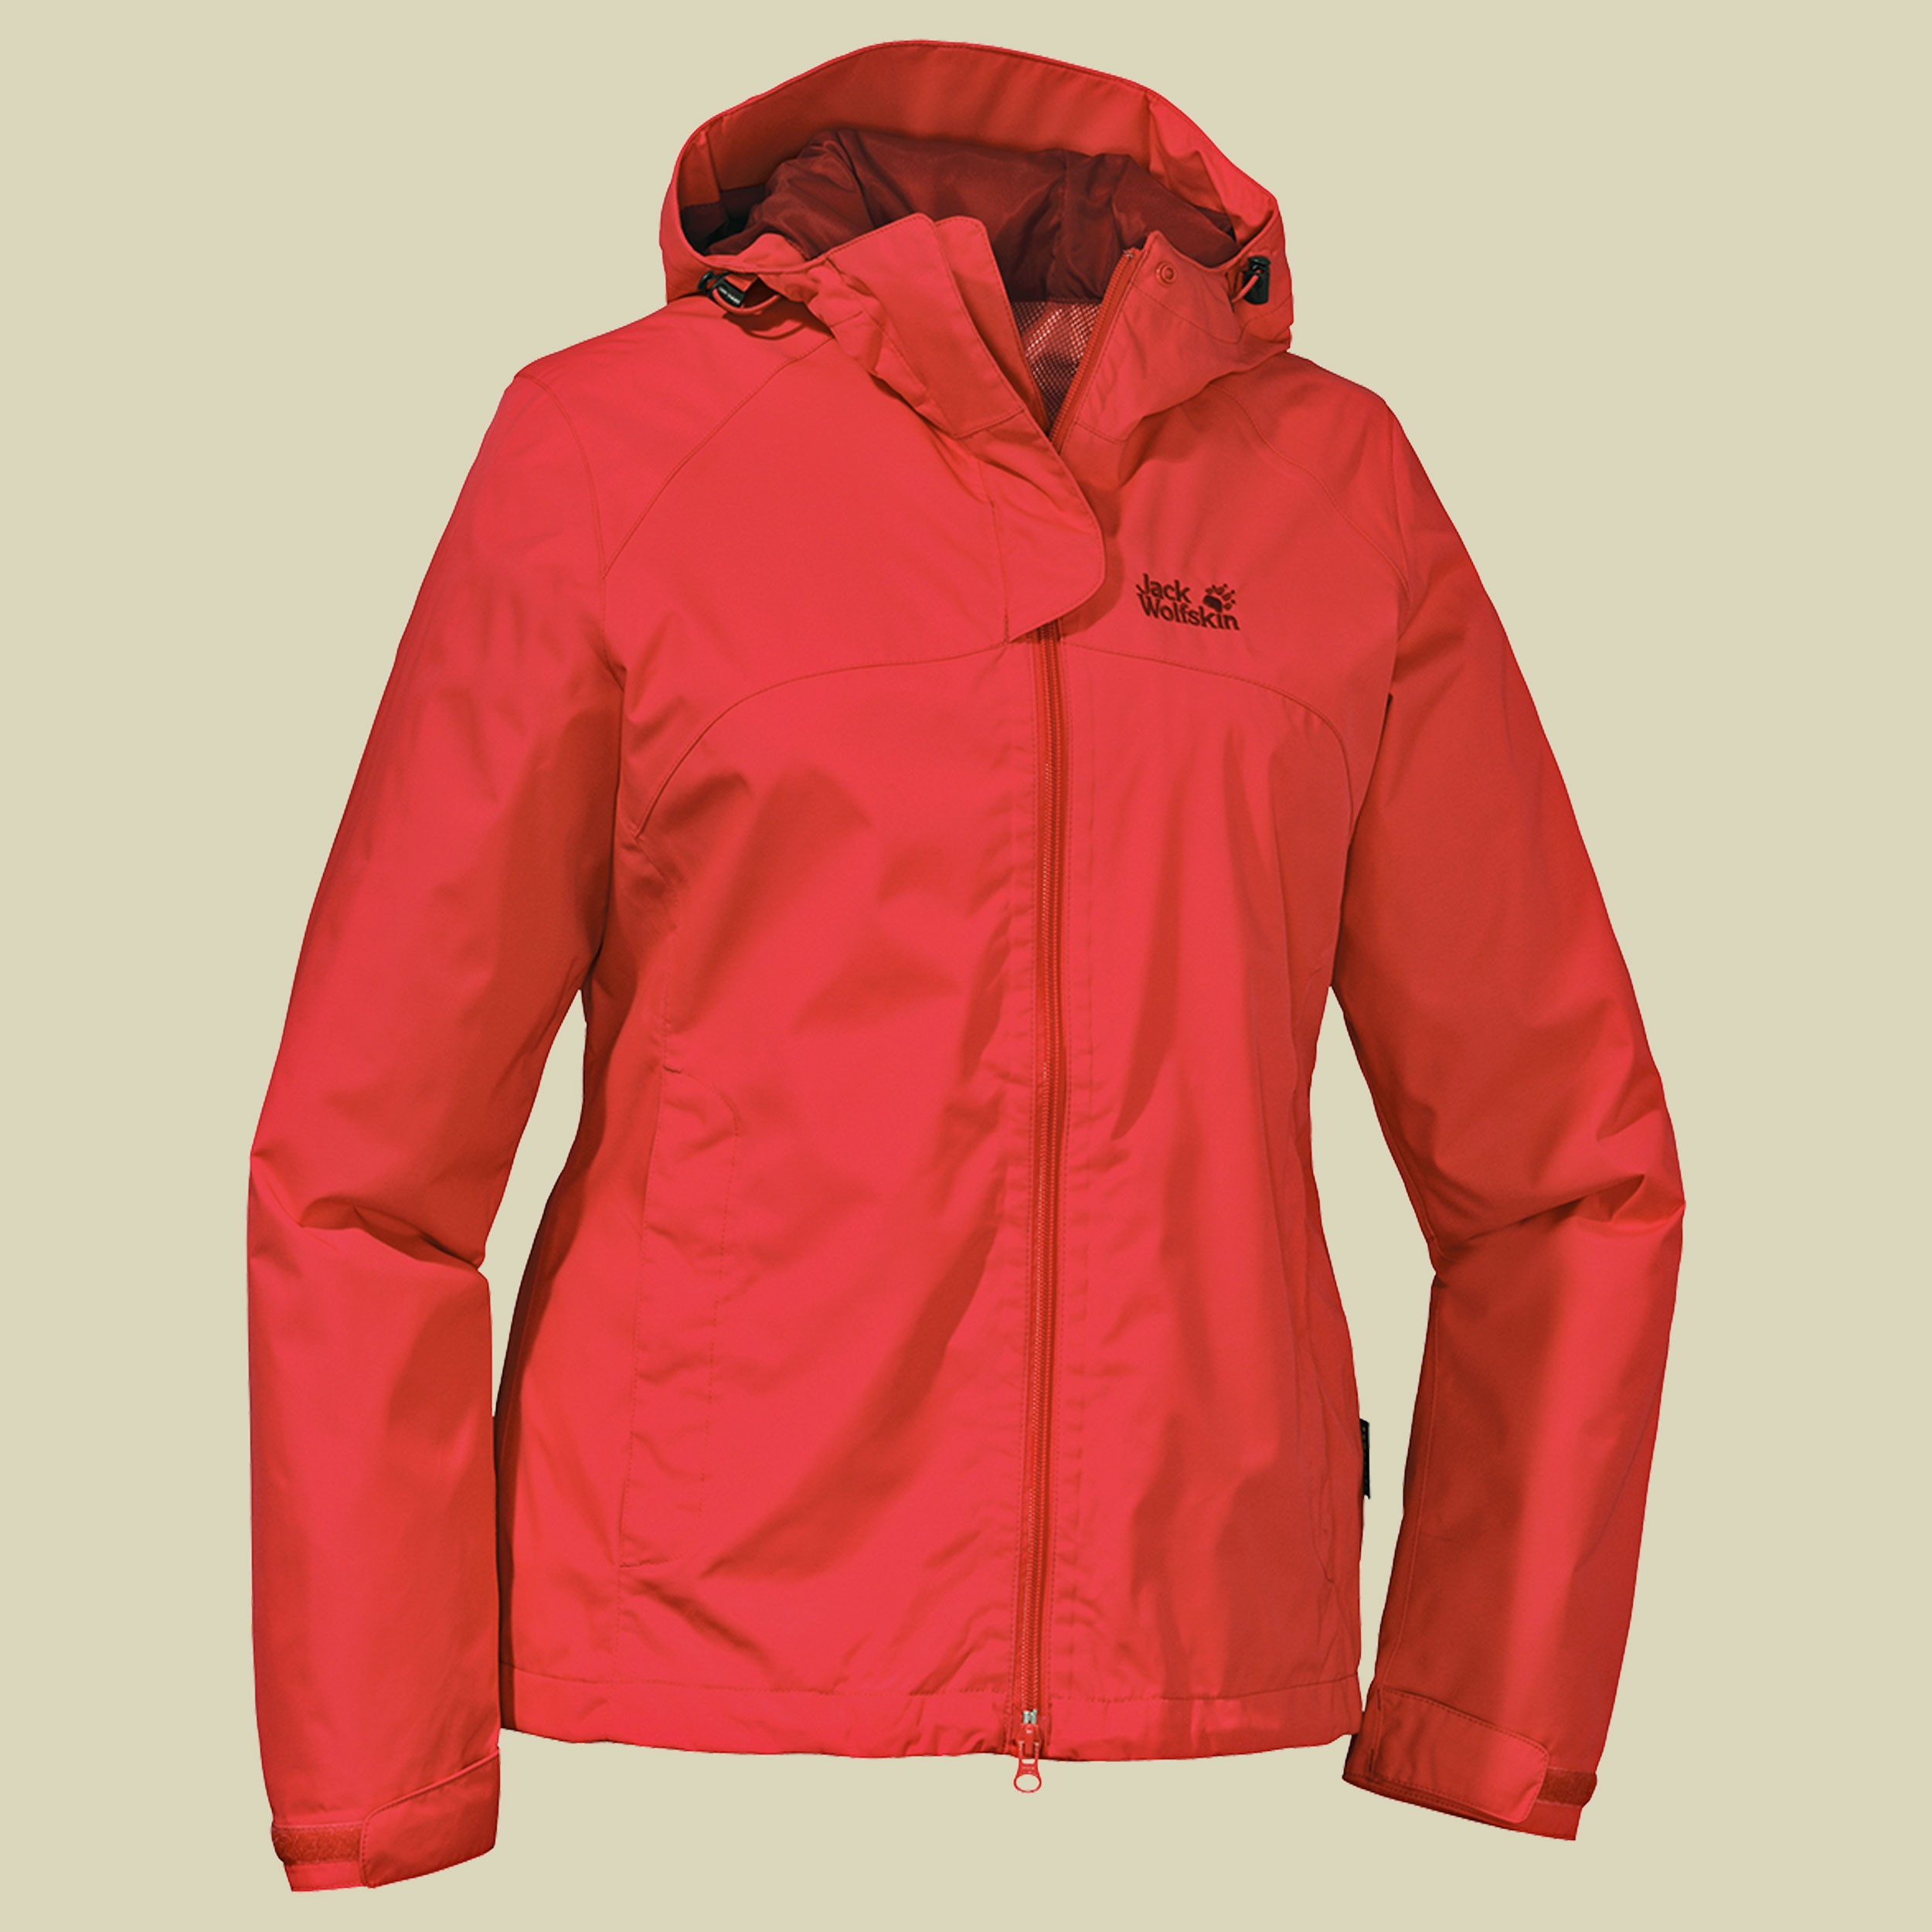 Arroyo Jacket Women